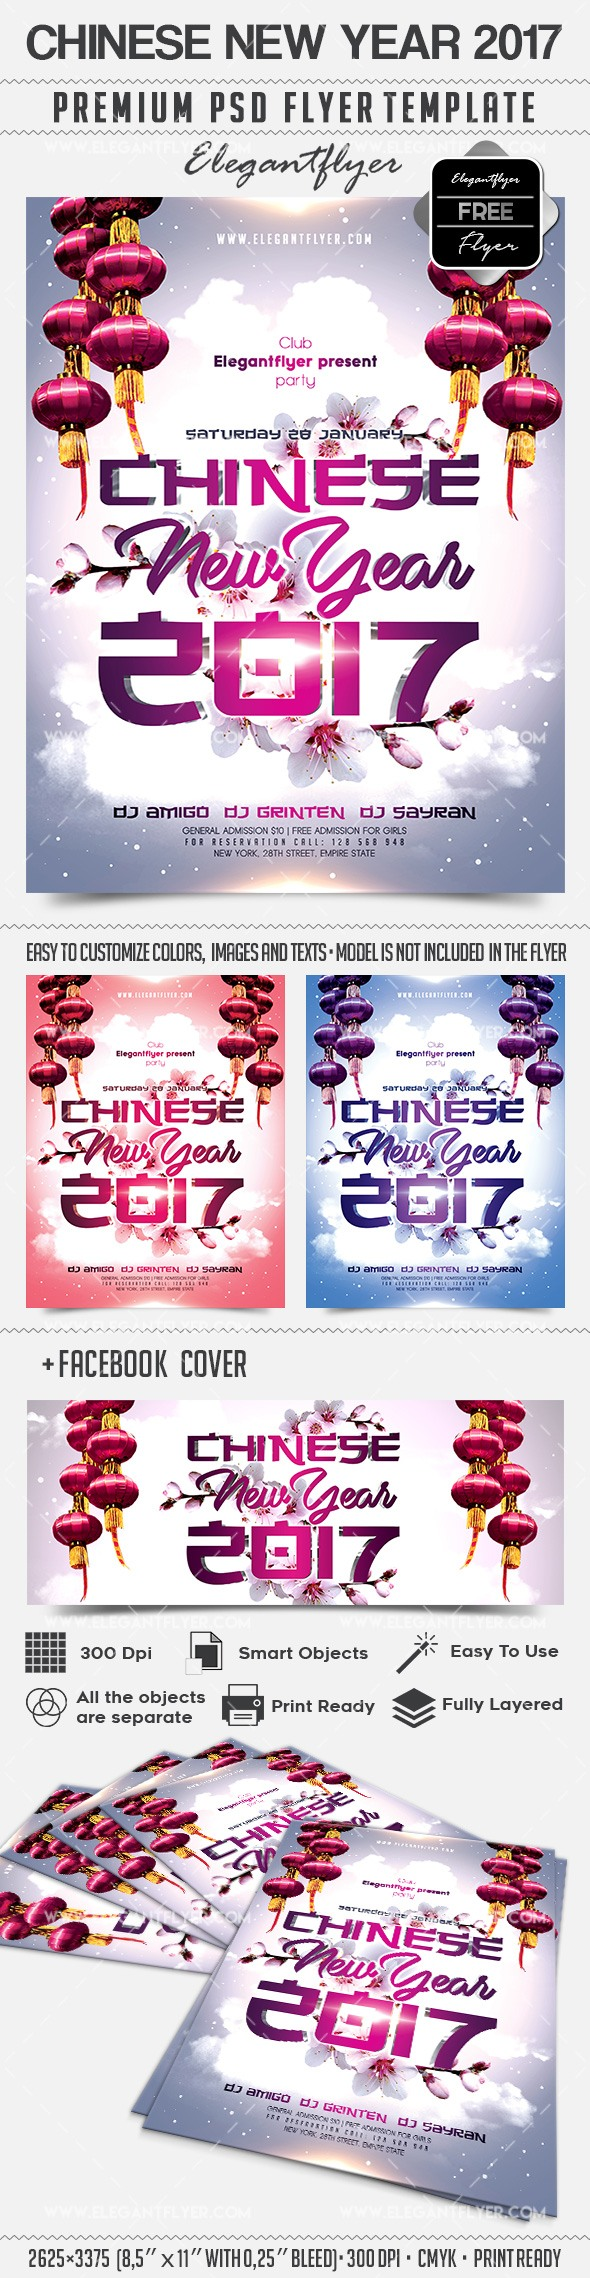 Chinese New Year 2017 – Free Flyer PSD Template + Facebook Cover